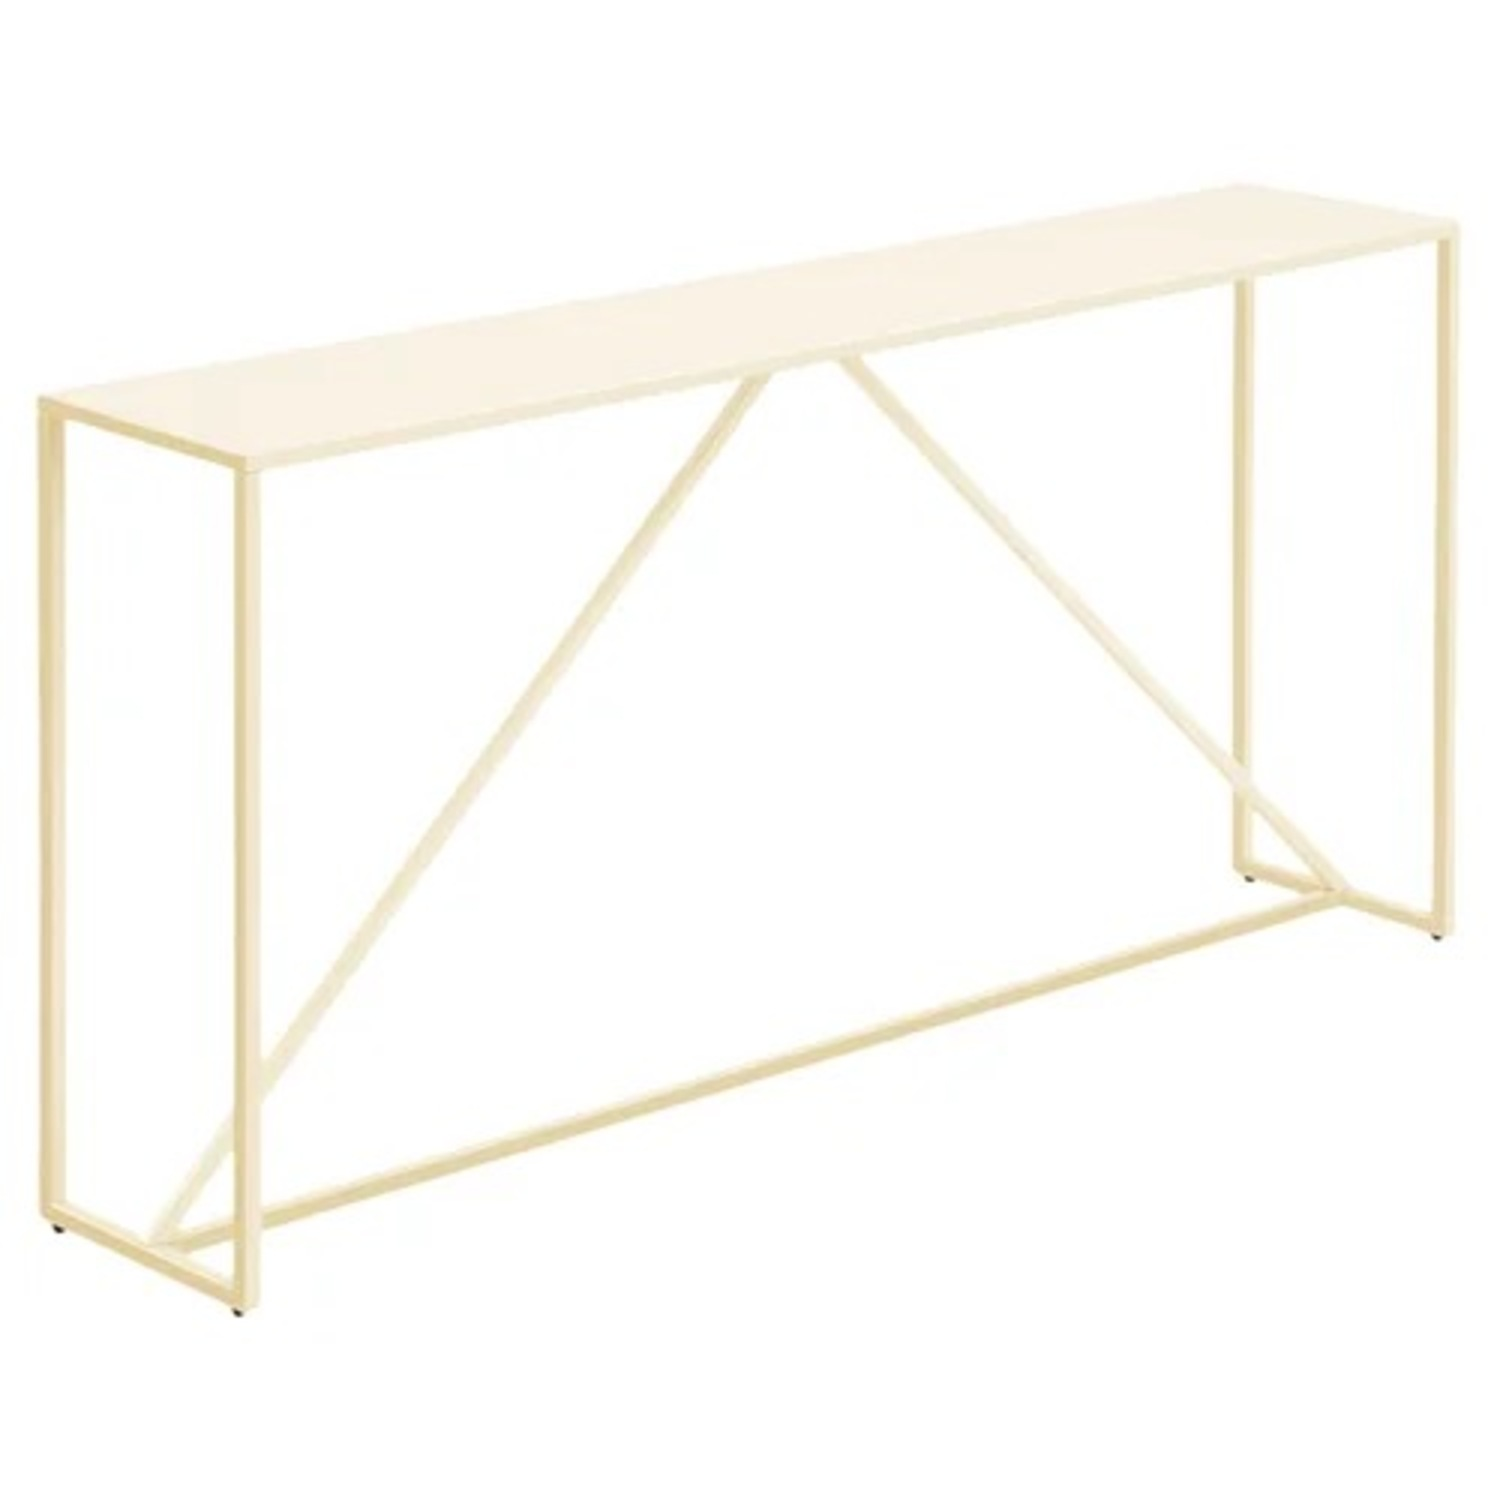 Blu Dot Strut Console Table in Ivory - image-4